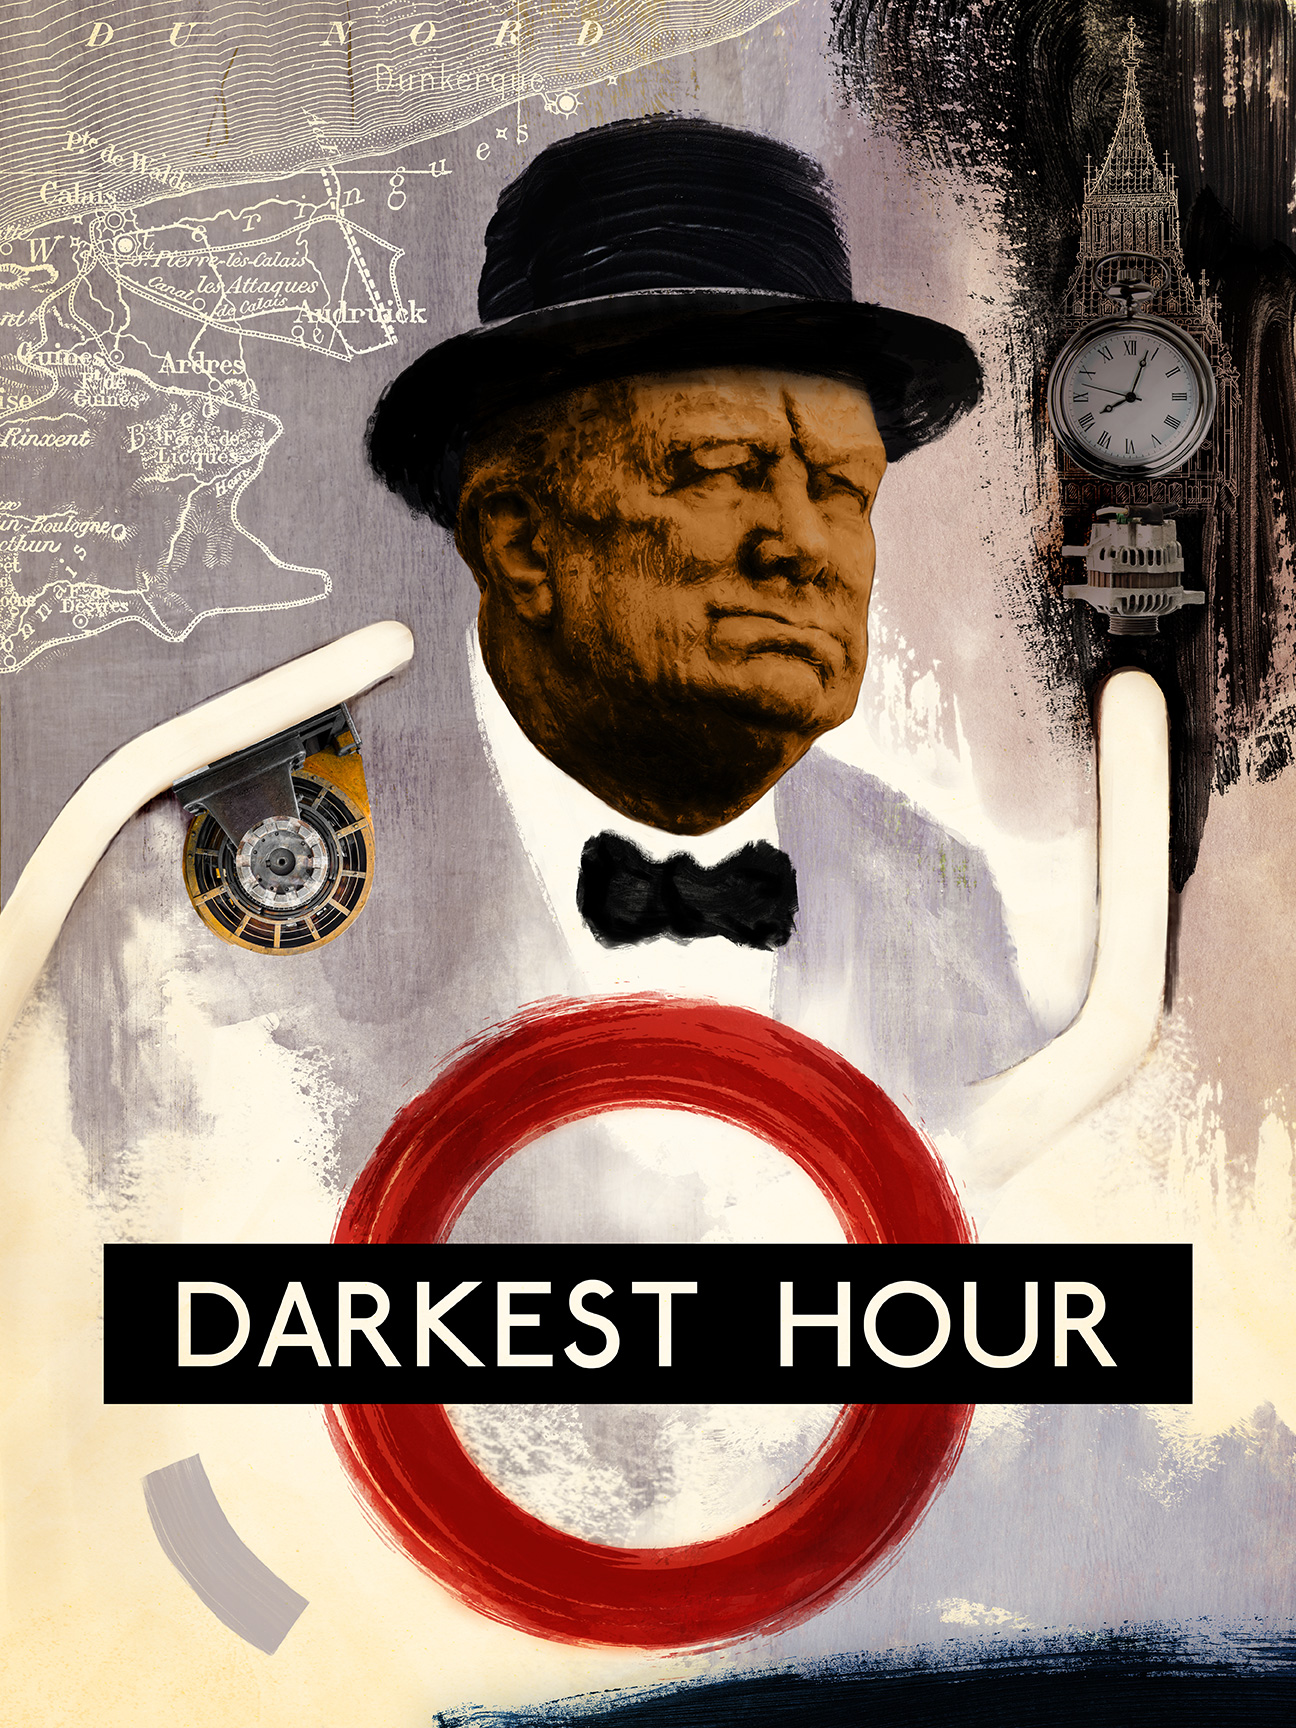 Darkest Hour - inspired by Richard Hamilton, designed by Alice Li:Shutterstock